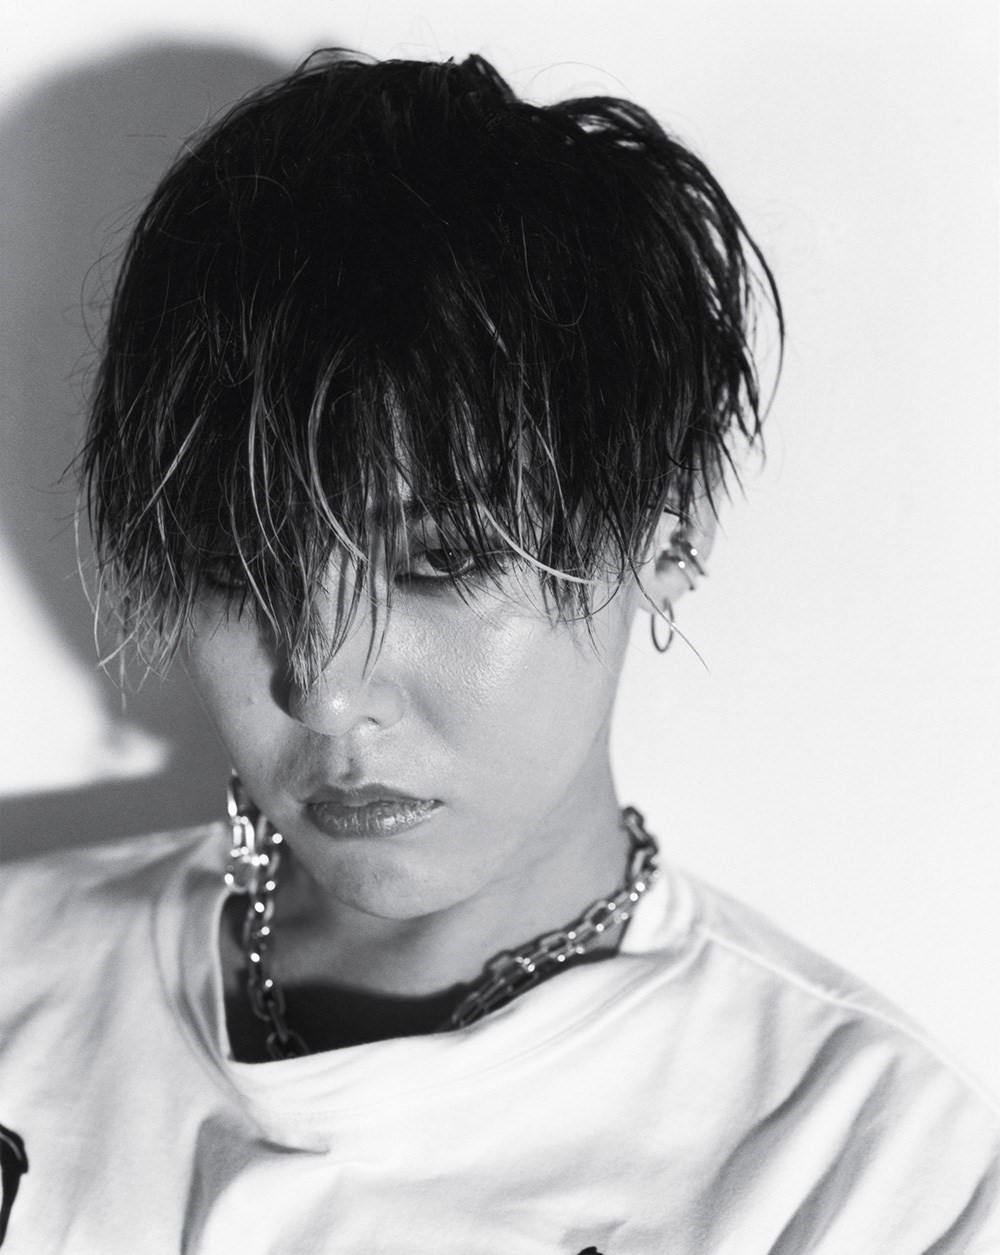 HOT And SEXY: Stunning Photoshoot Of G Dragon 3